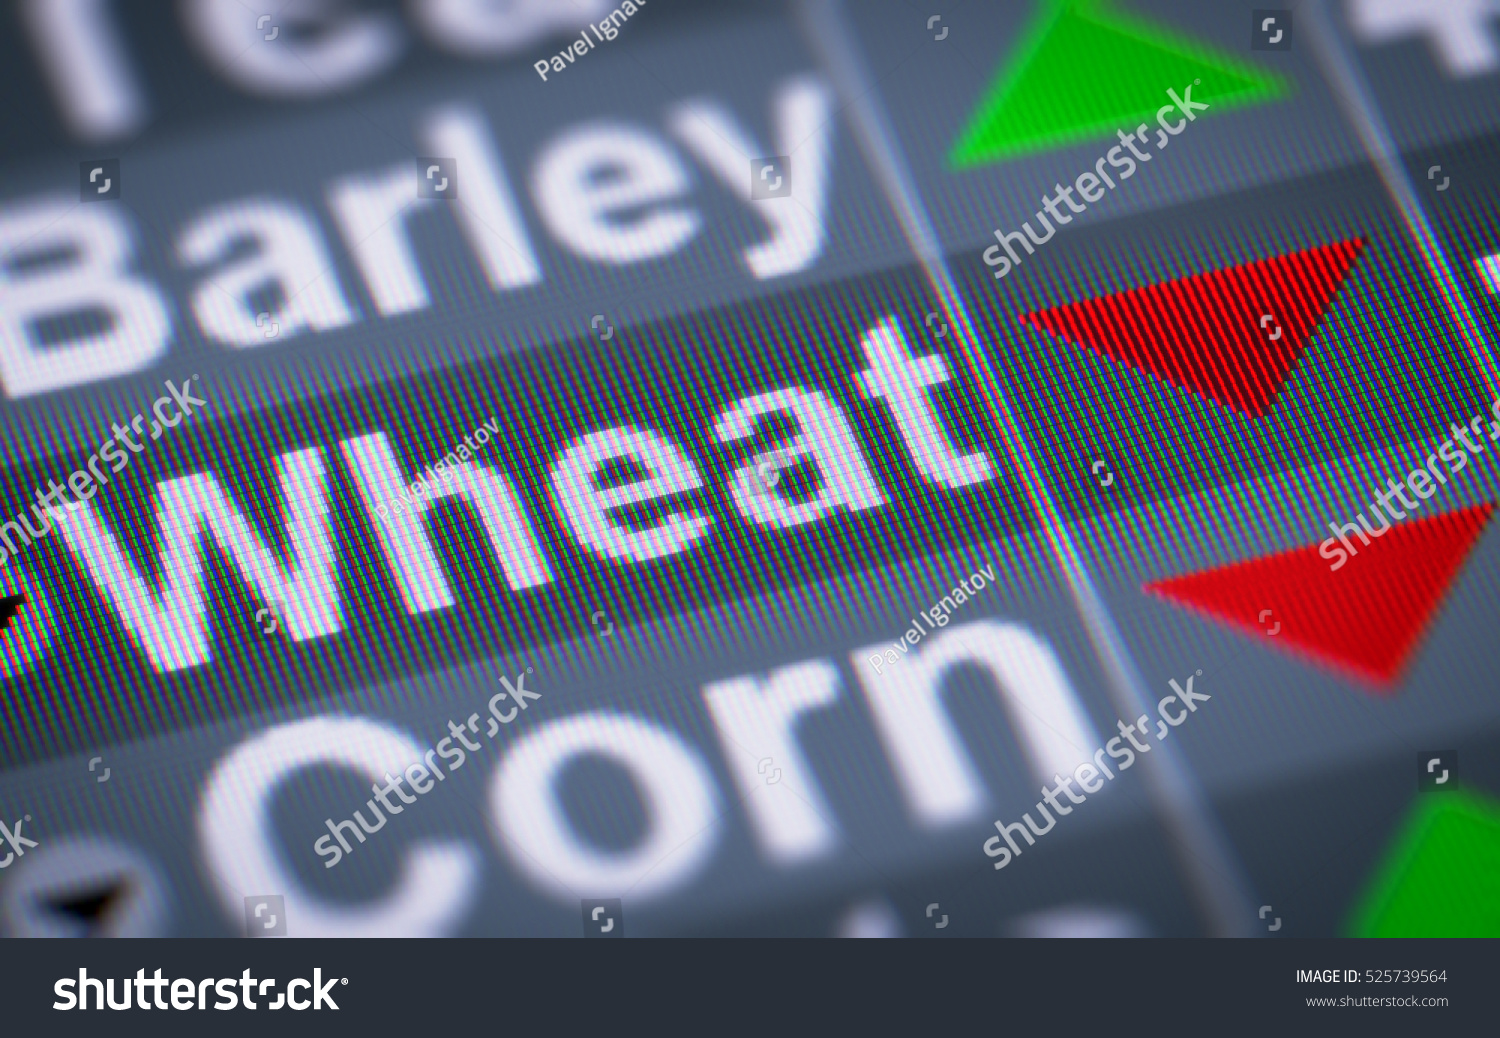 Wheat index stock market down stock illustration 525739564 wheat index of the stock market down biocorpaavc Gallery